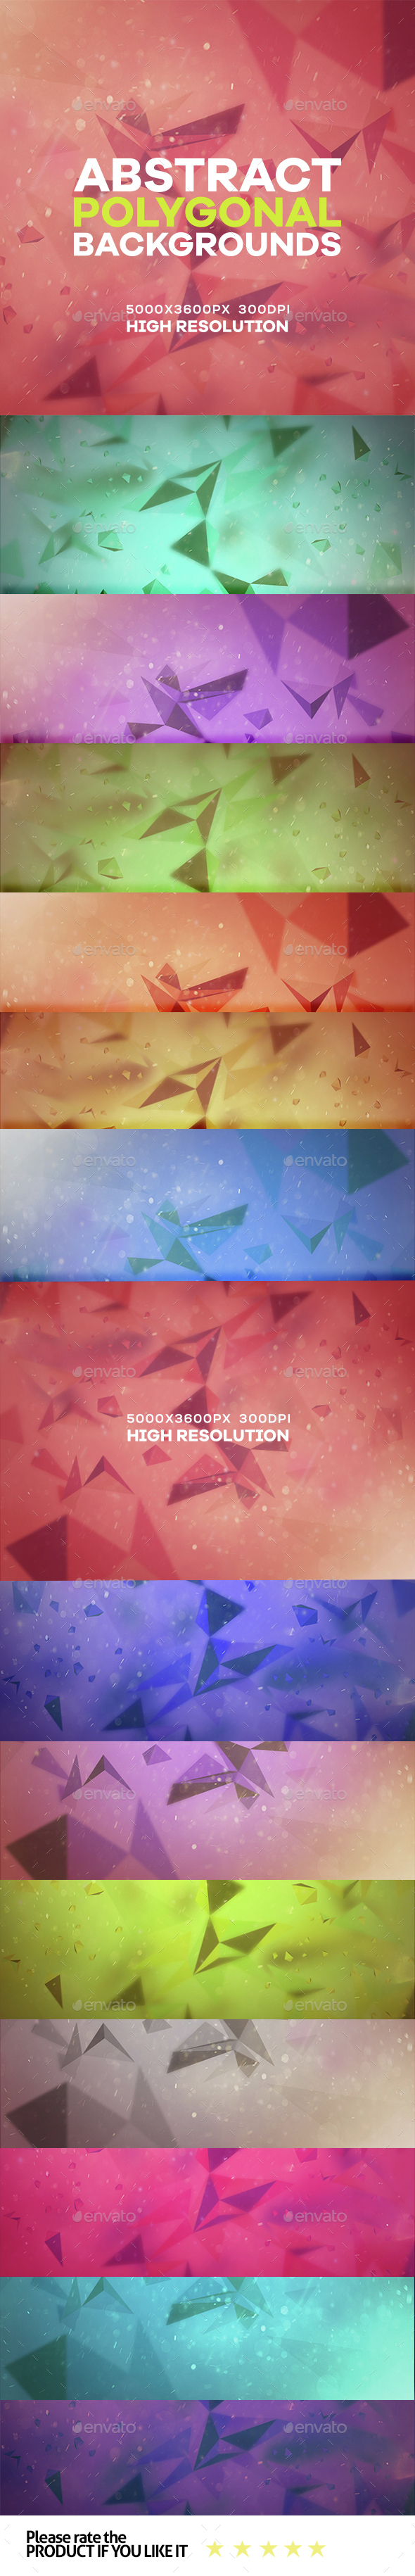 Abstract Polygonal Dust background